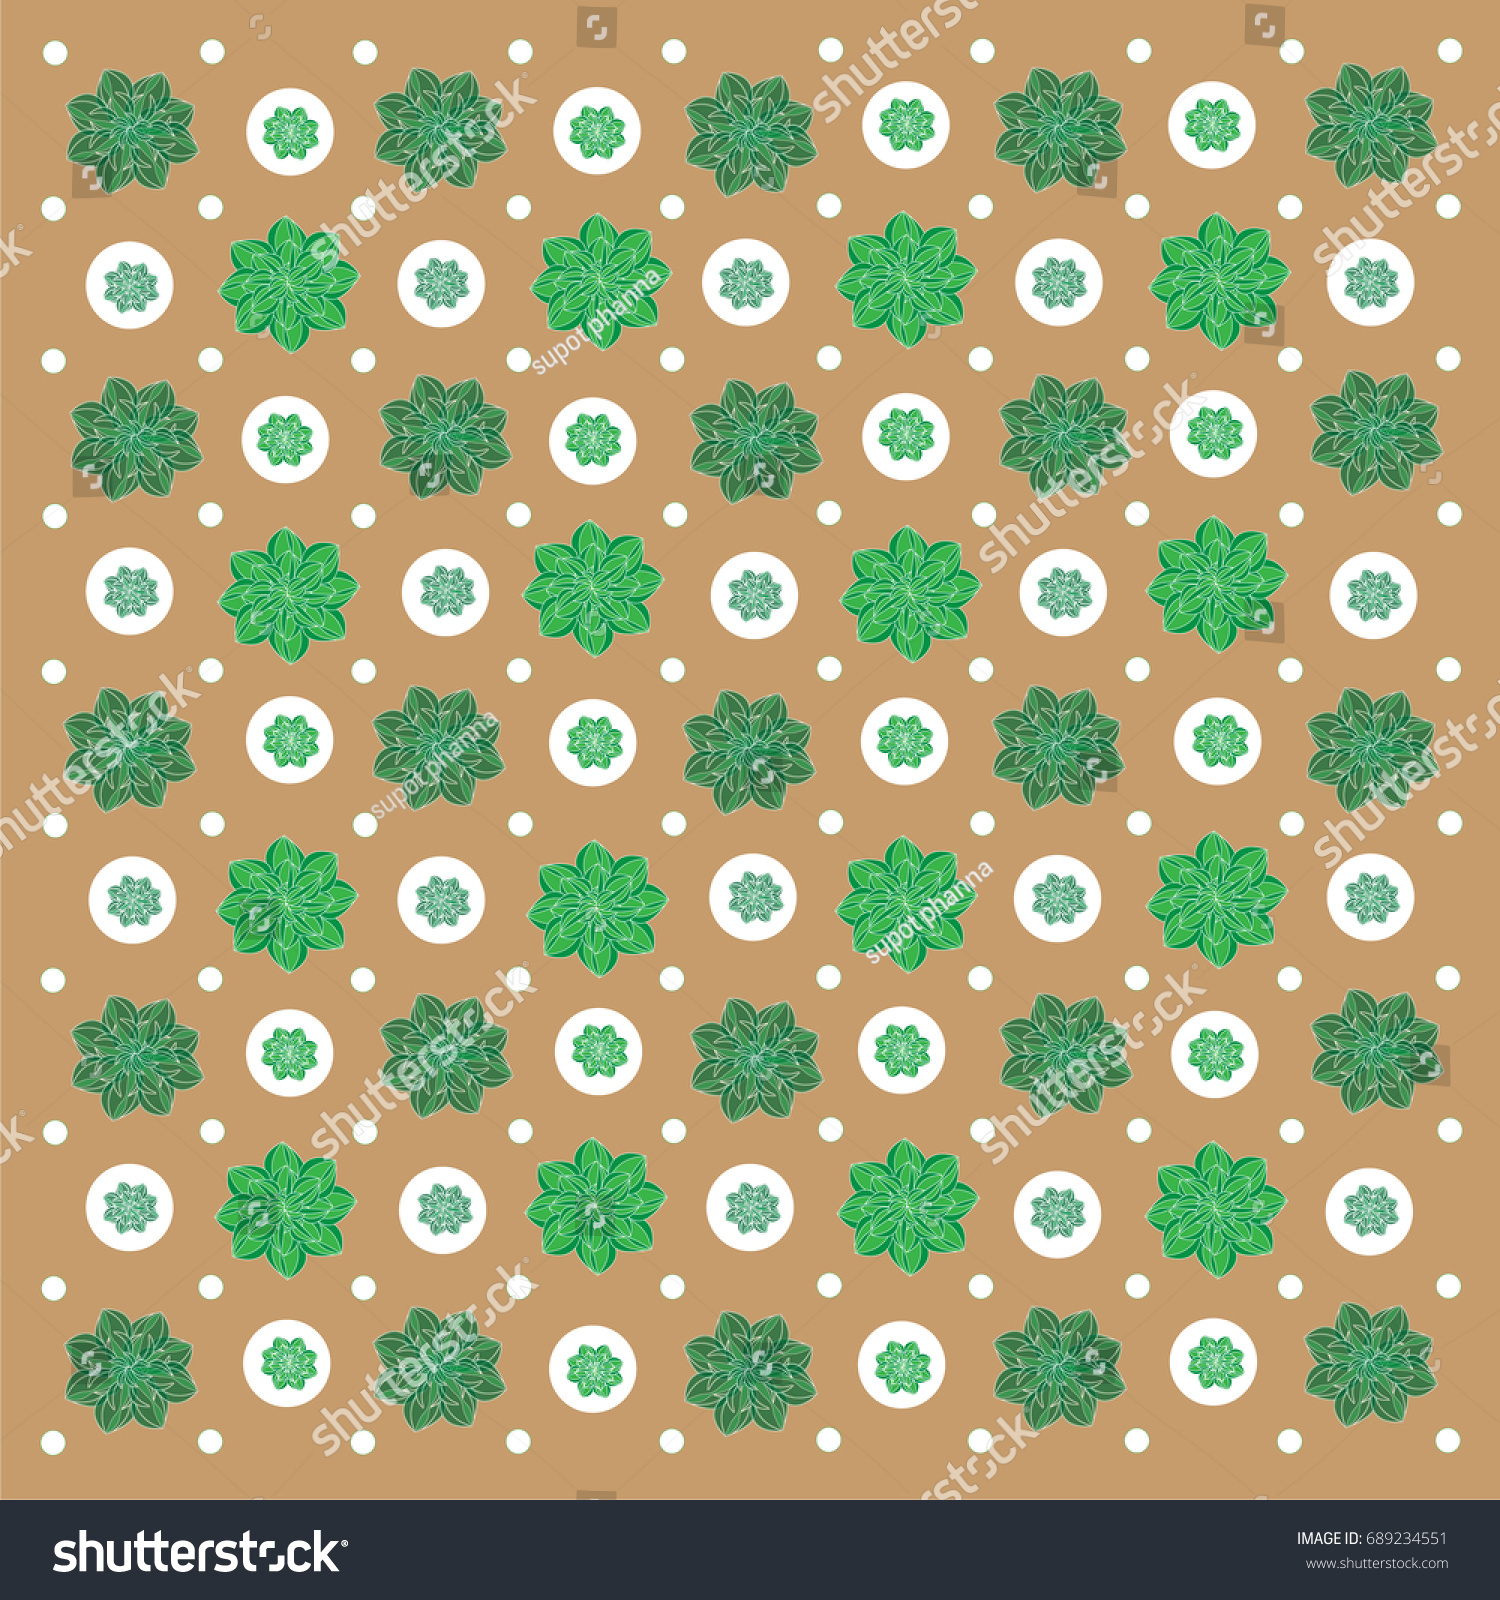 Wallpaper Green Fower On Brown Background Stock Vector - Green and brown wallpaper